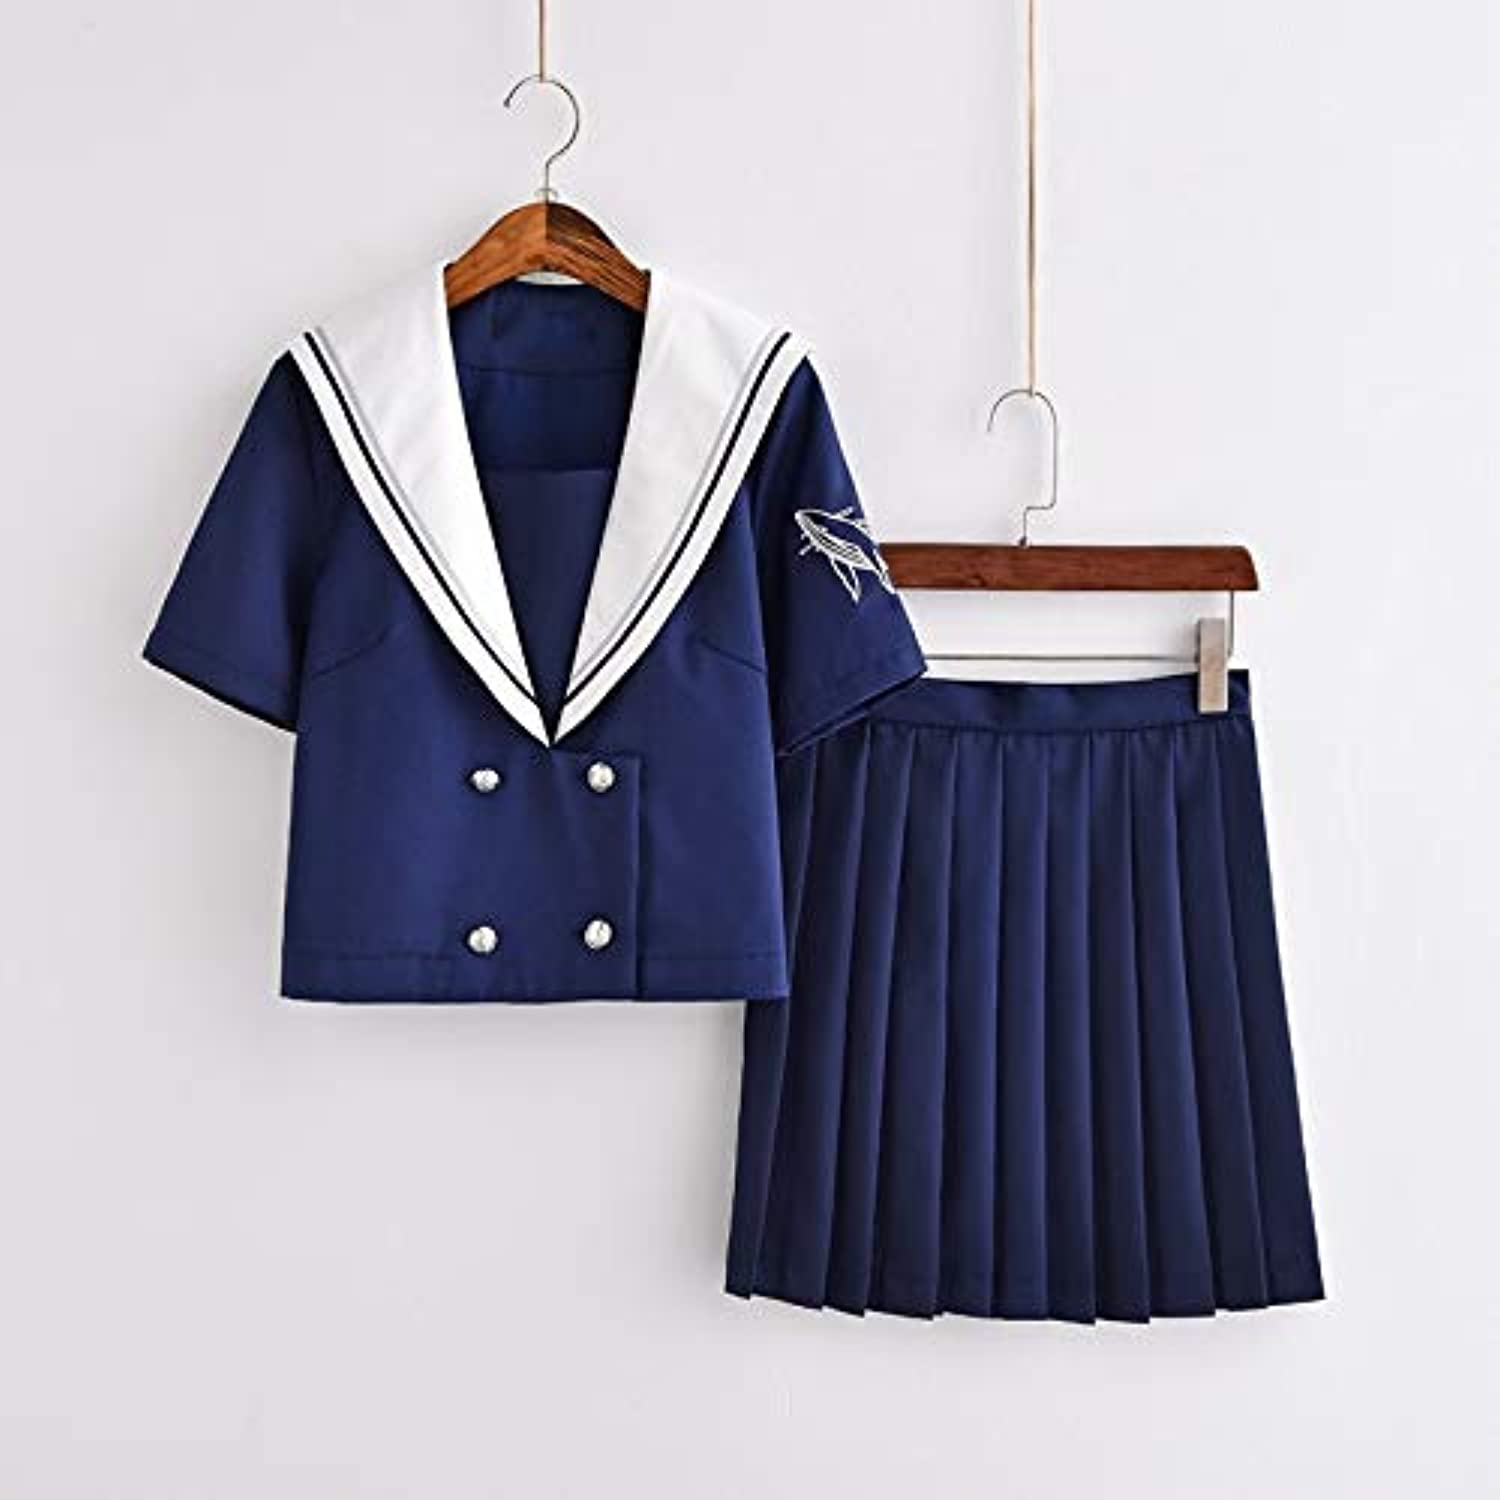 WHFDBZQ Short Sleeve bluee School Uniform Double Breasted Suit Young Girl Sweet Mini Pleated Skirts